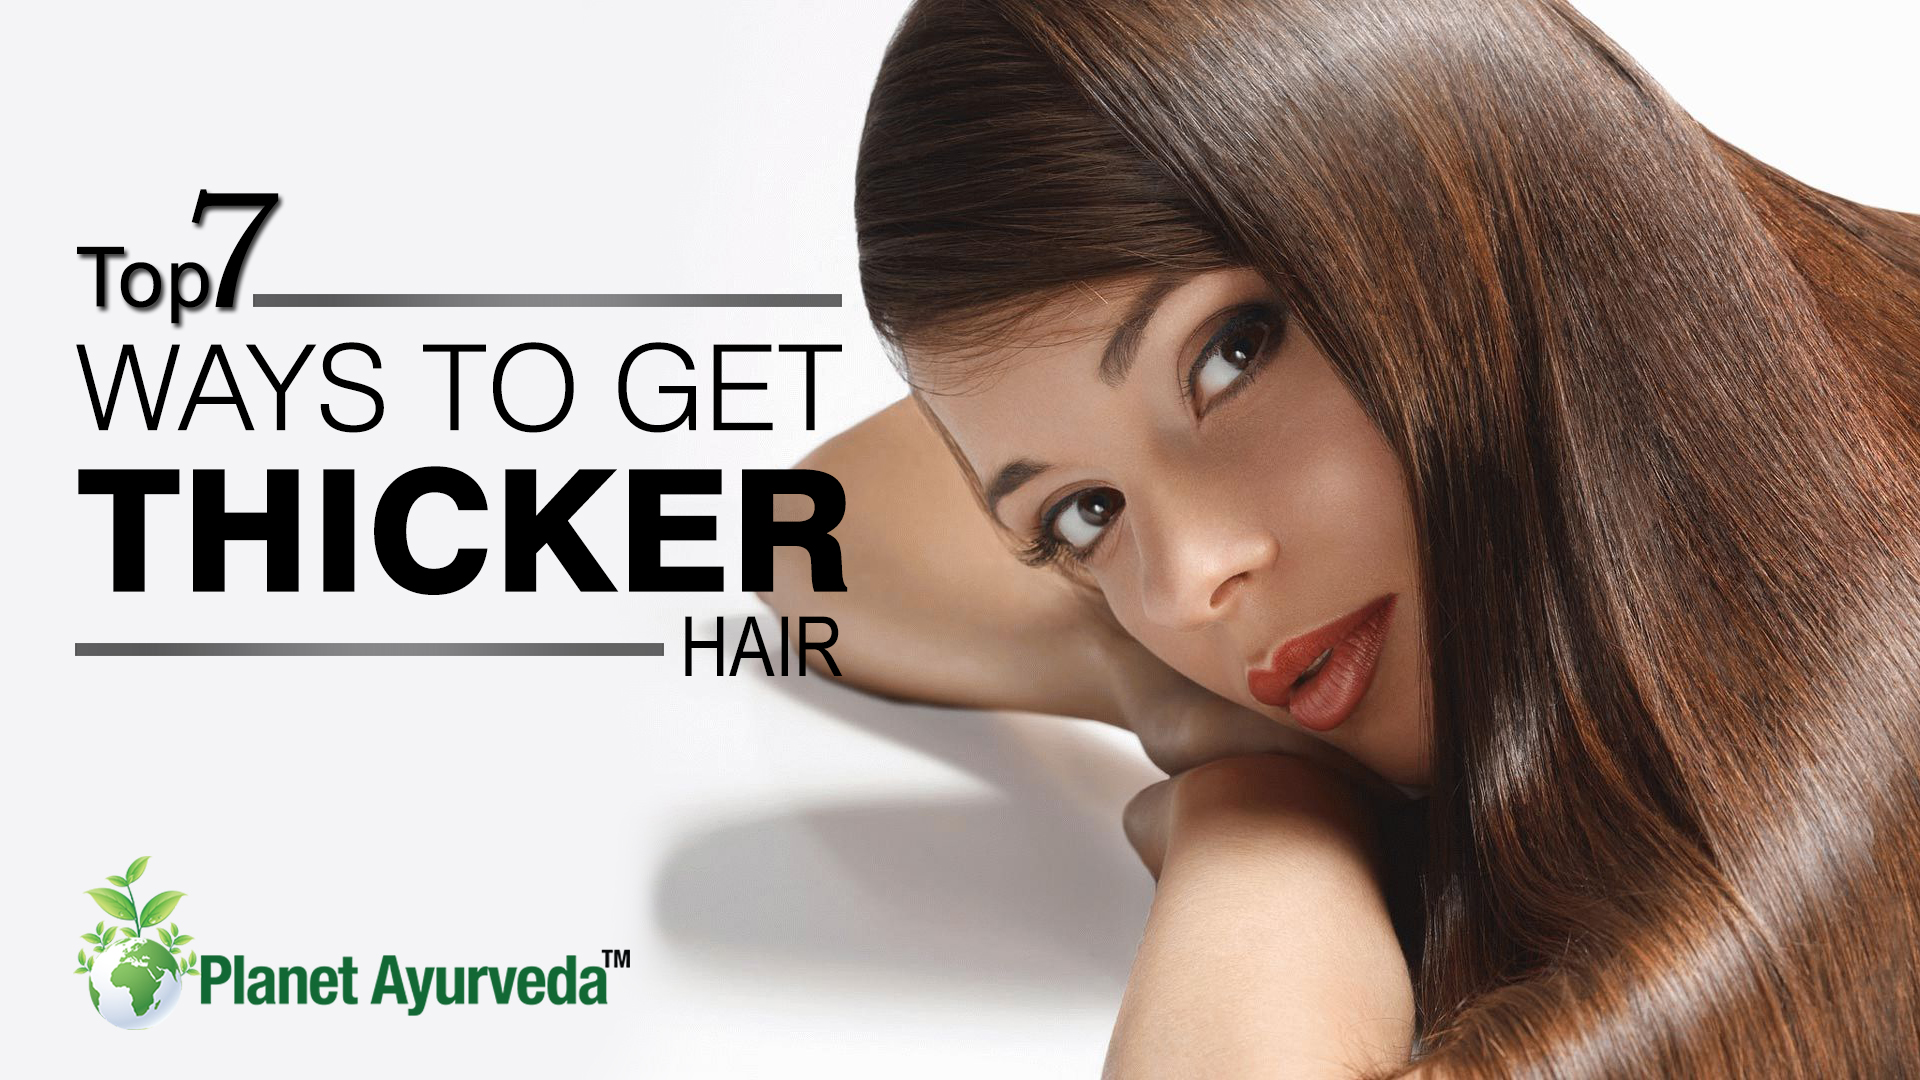 TOP 7 WAYS TO GET THICKER HAIR